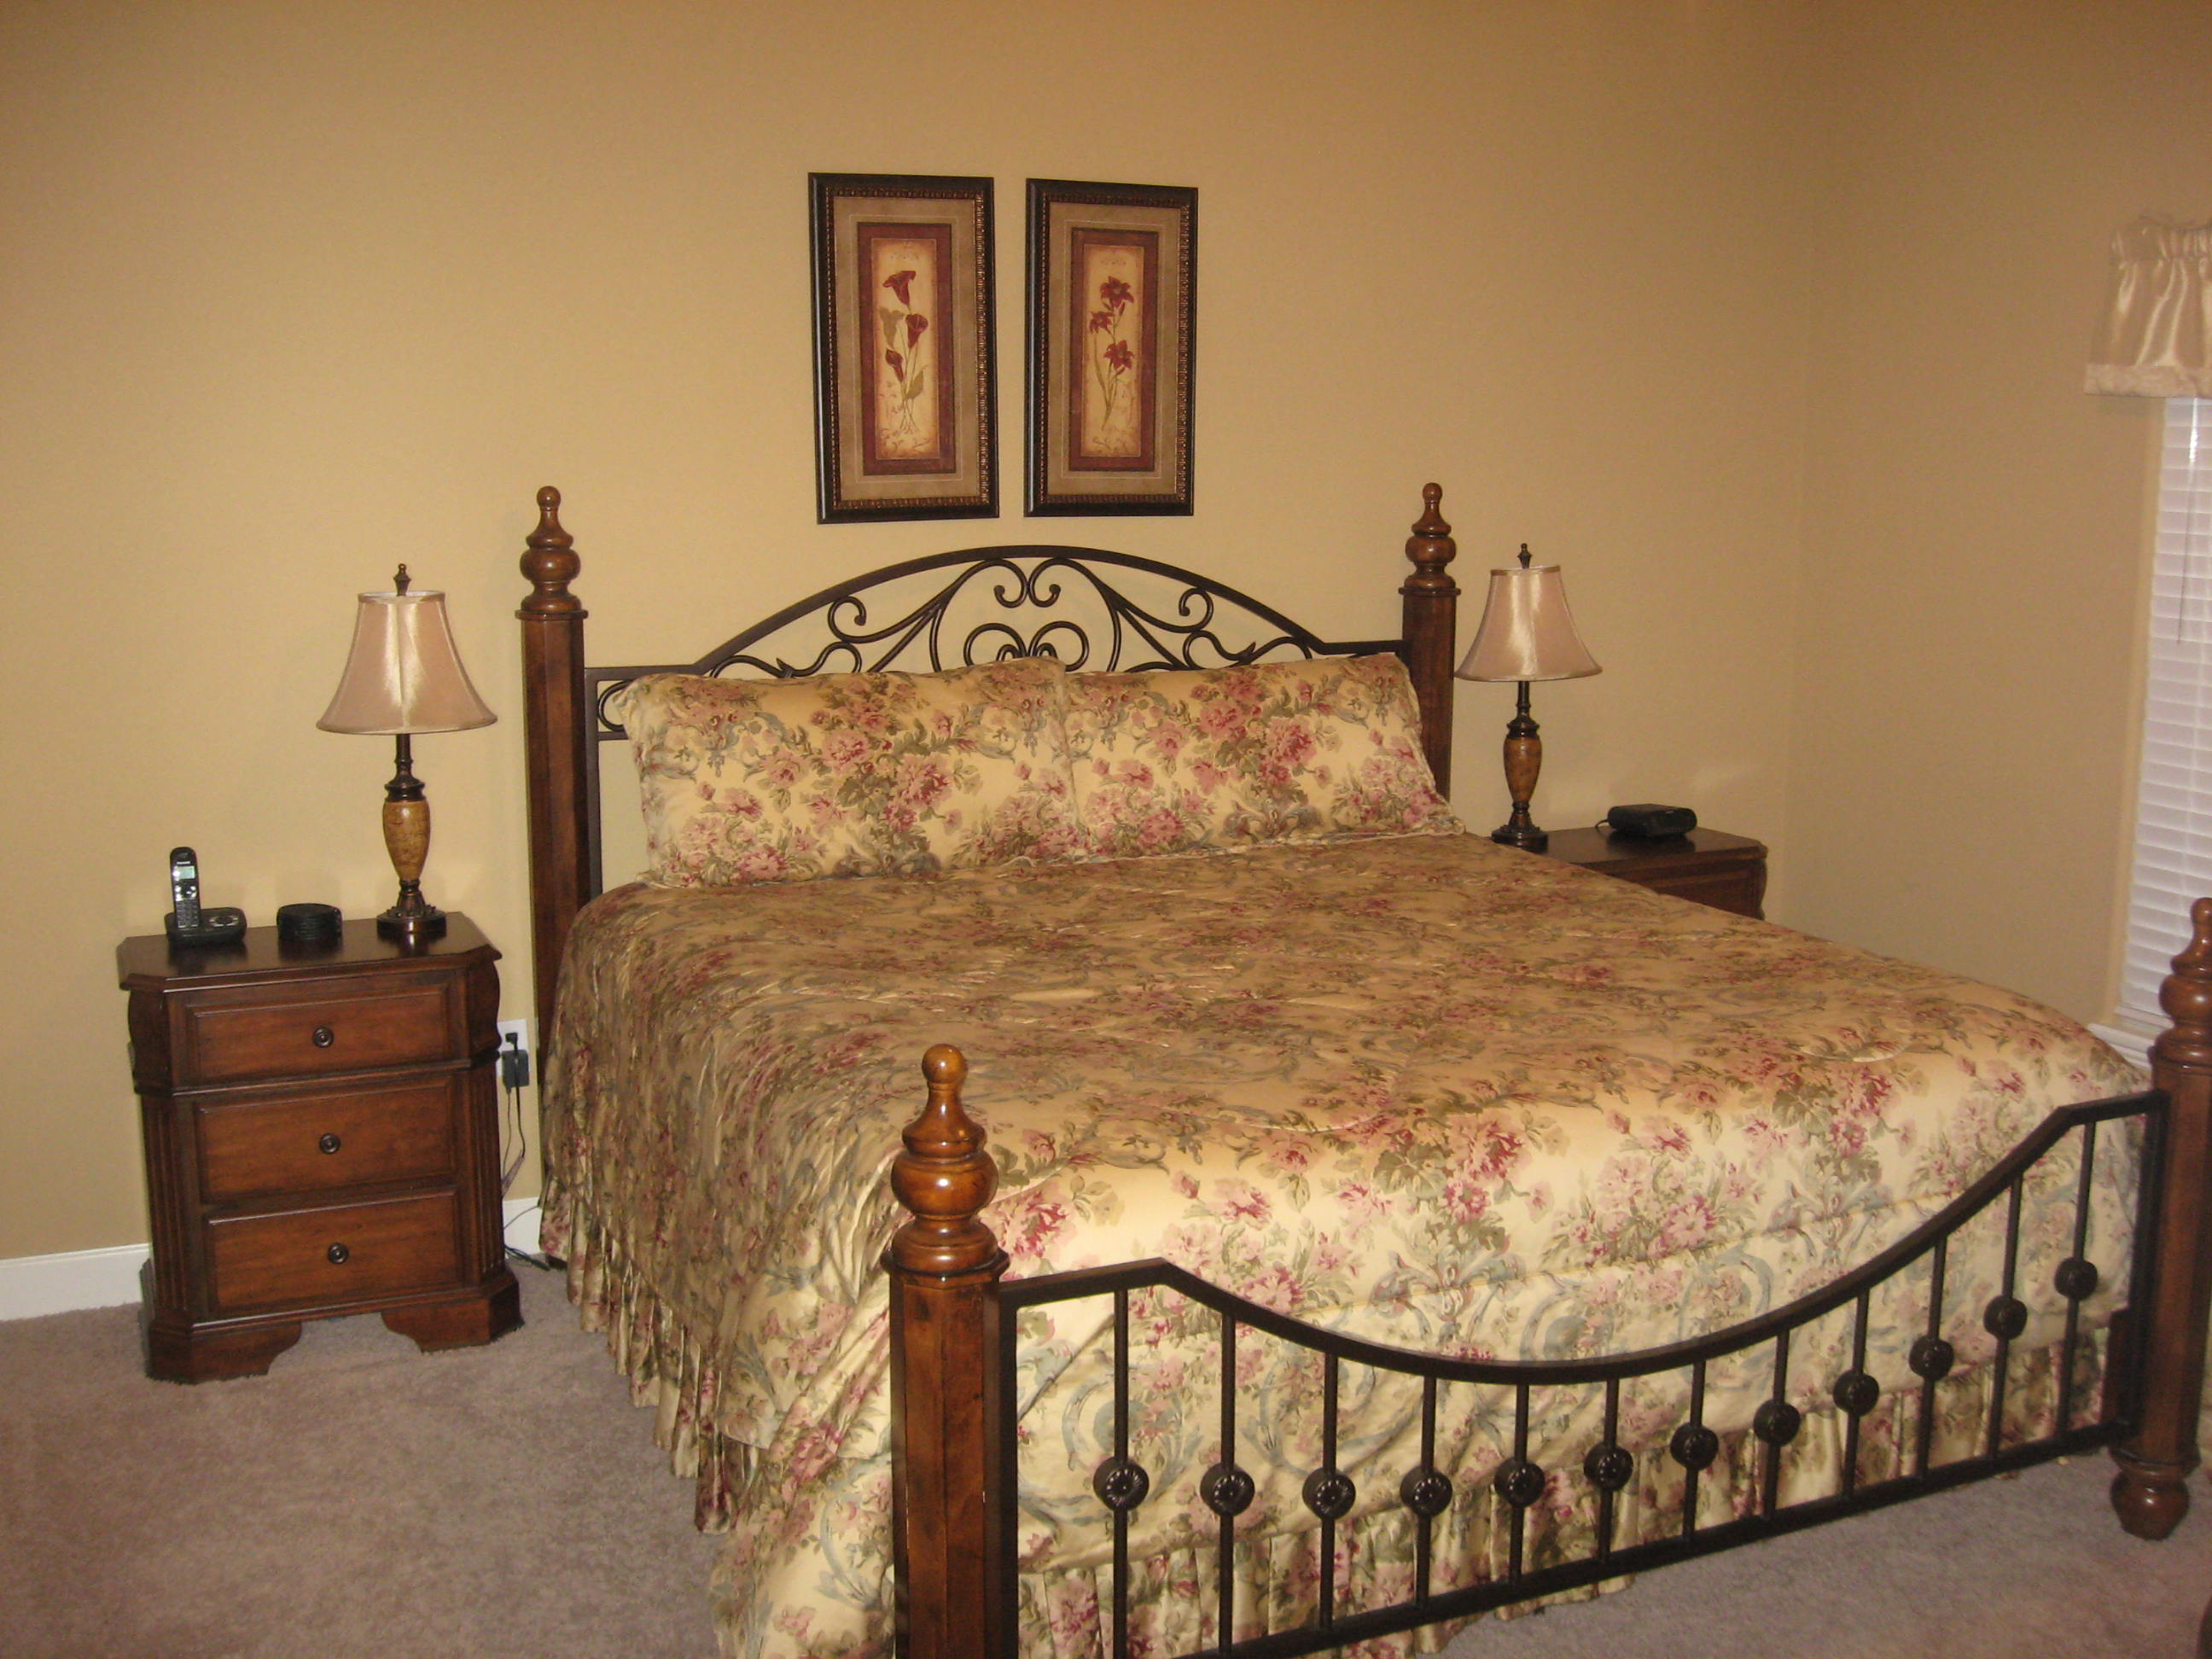 Branson Canyon Vacation Rentals Reunion Rendezvous Master bedroom